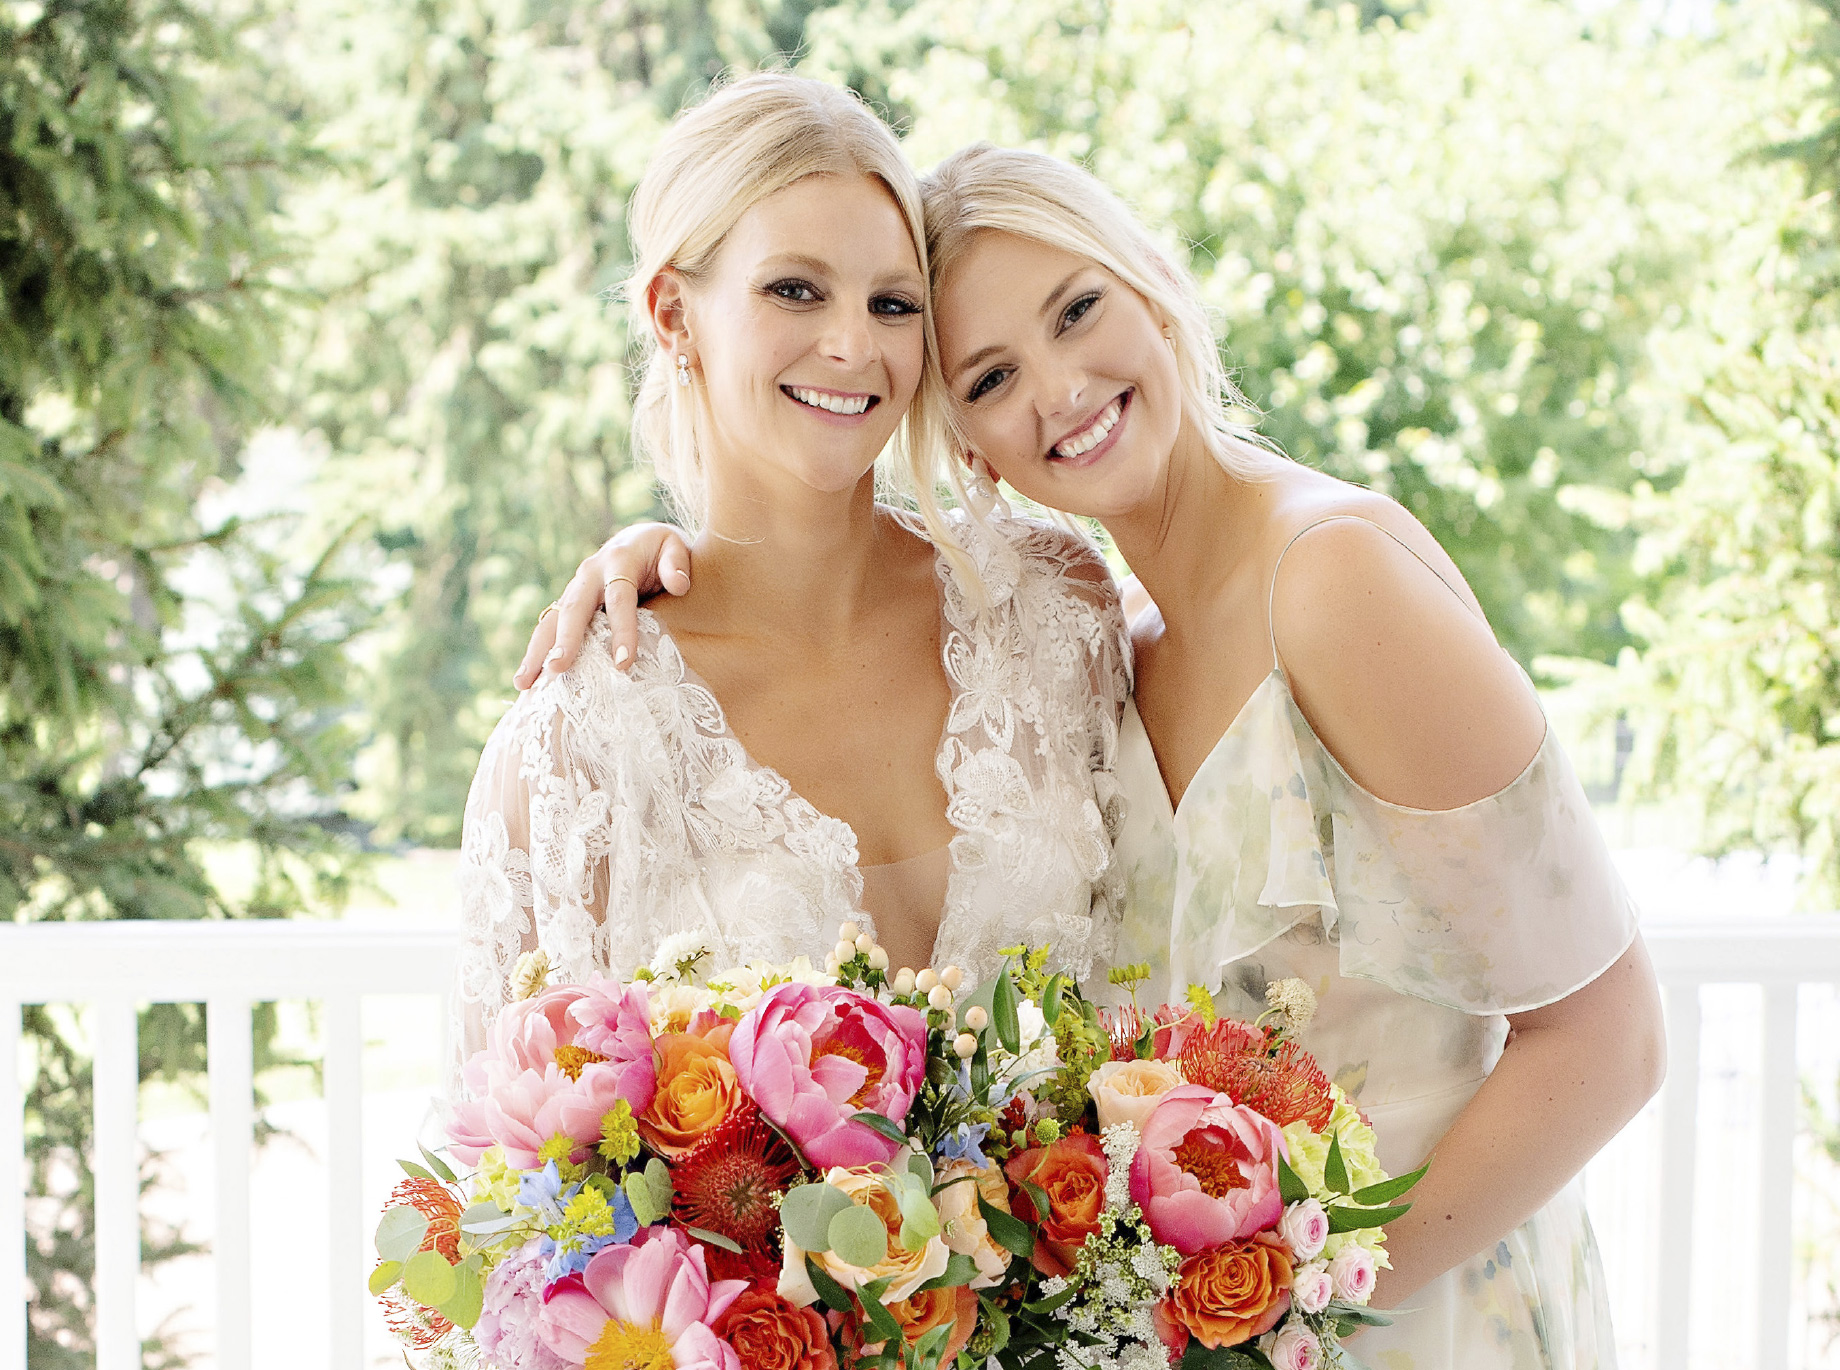 spring-wedding-bouquets-colorful-coral-peonies